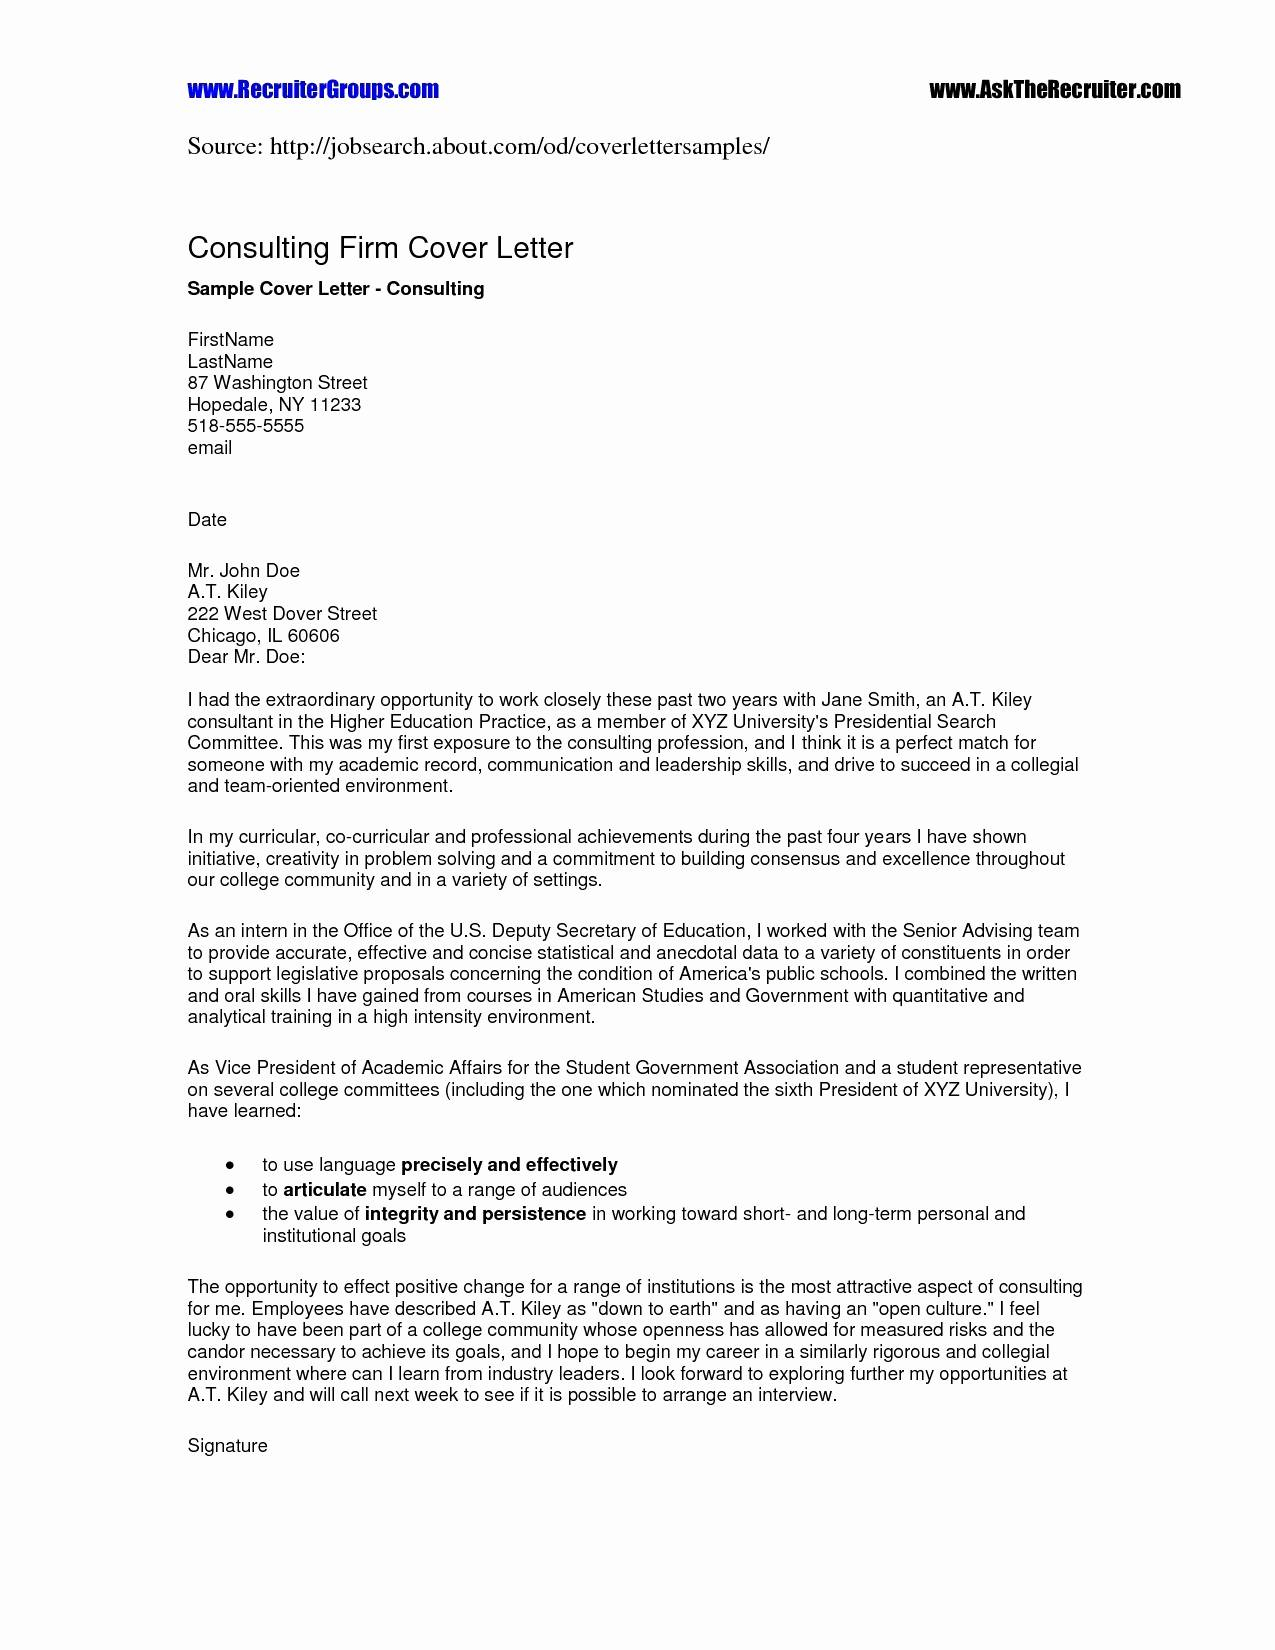 clinical research coordinator resume sample example-Clinical Trial Close Out Letter Template 14 Luxury Cover Letter for Clinical Research associate Resume 20-t